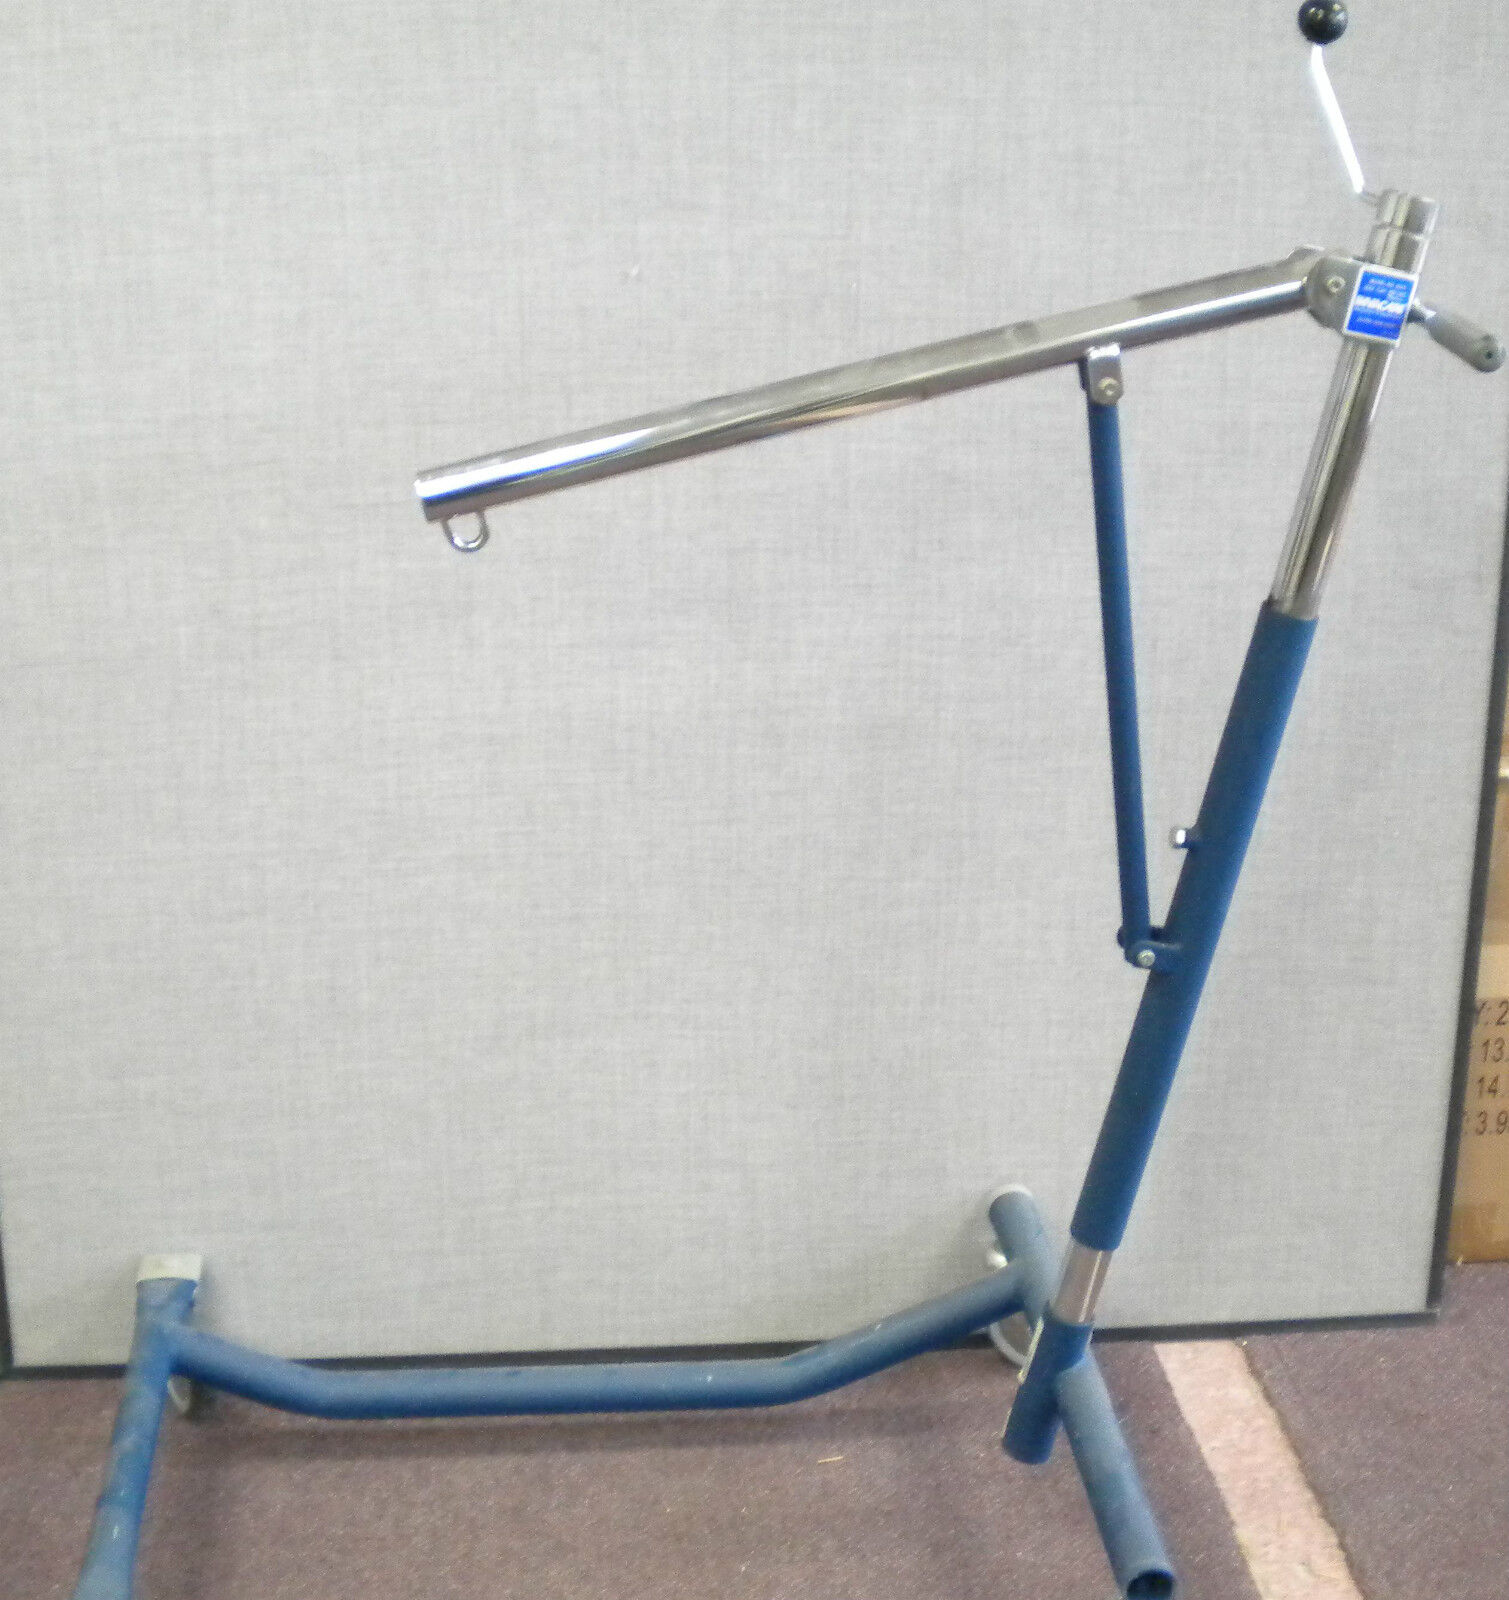 Invacare Hoyer Lift Hydraulic Medical Patient Transfer Model